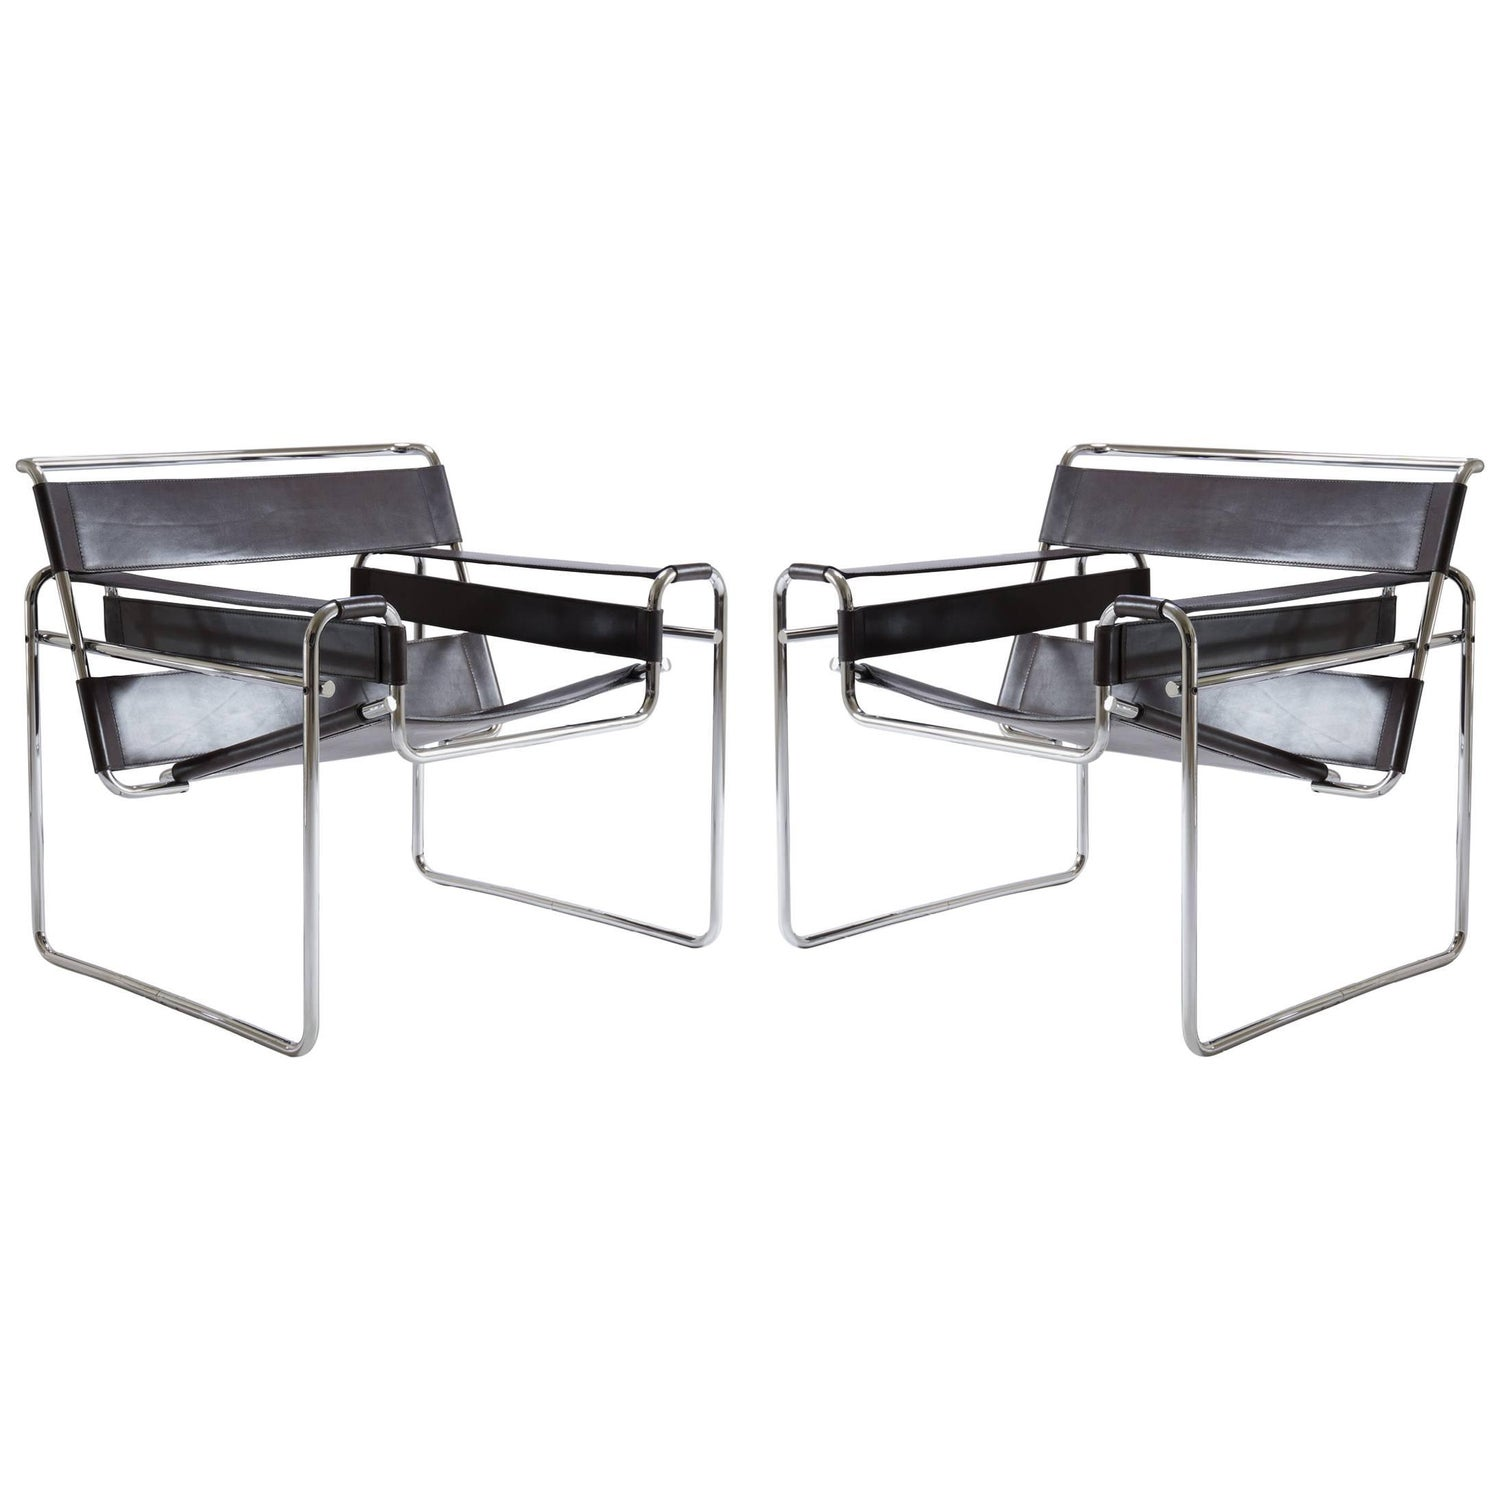 Marcel Breuer Furniture Chairs Sofas Tables & More 108 For